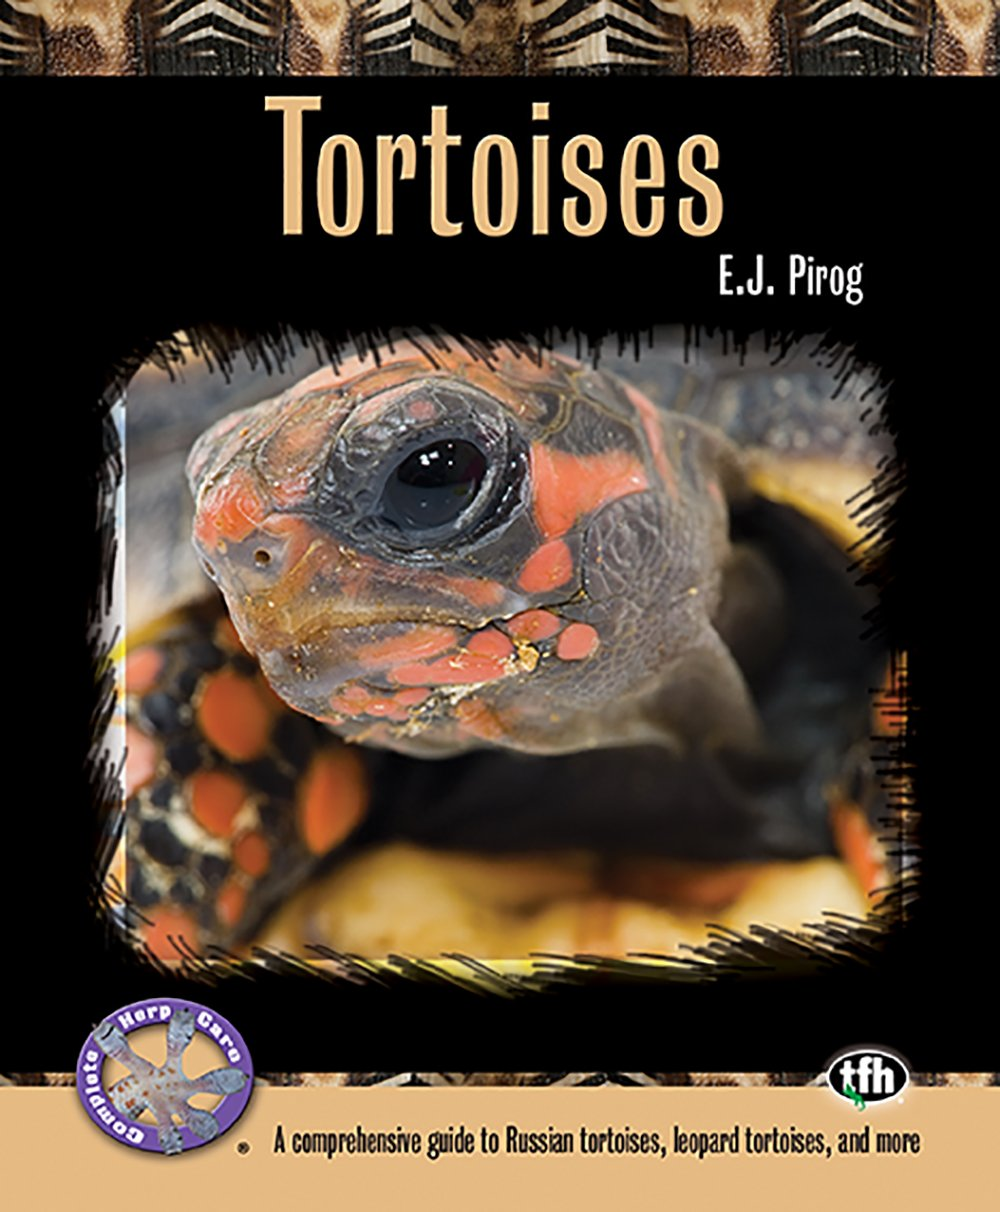 Tortoises: A Comprehensive Guide to Russian Tortoises, Leopard Tortoises, and more (Complete Herp Care)